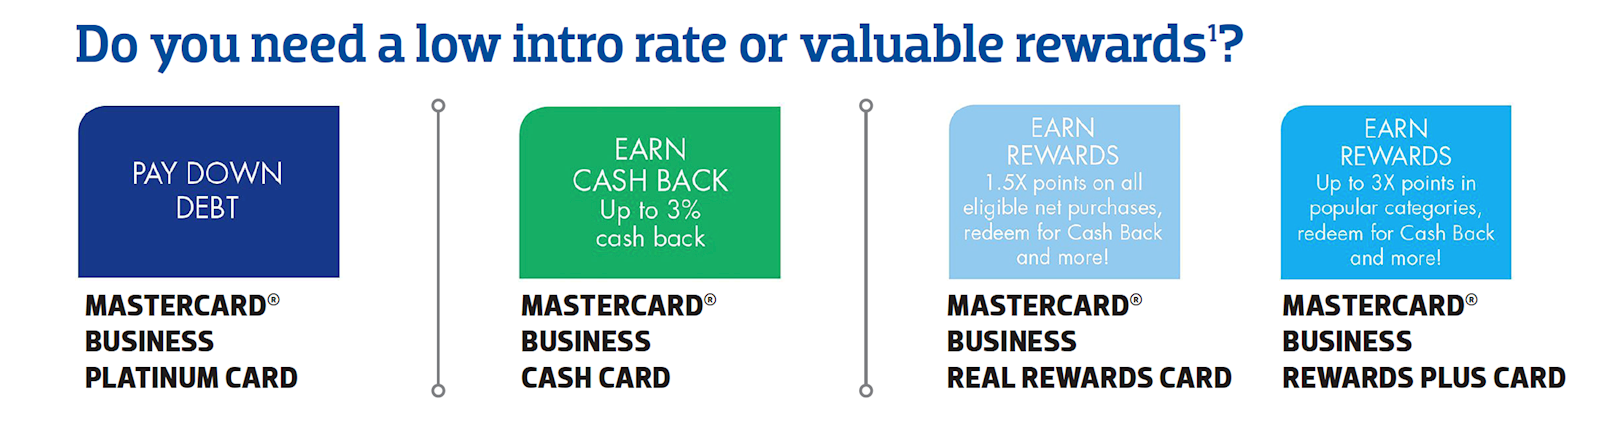 Do you need a low intro rate or valuable rewards? | business credit cards